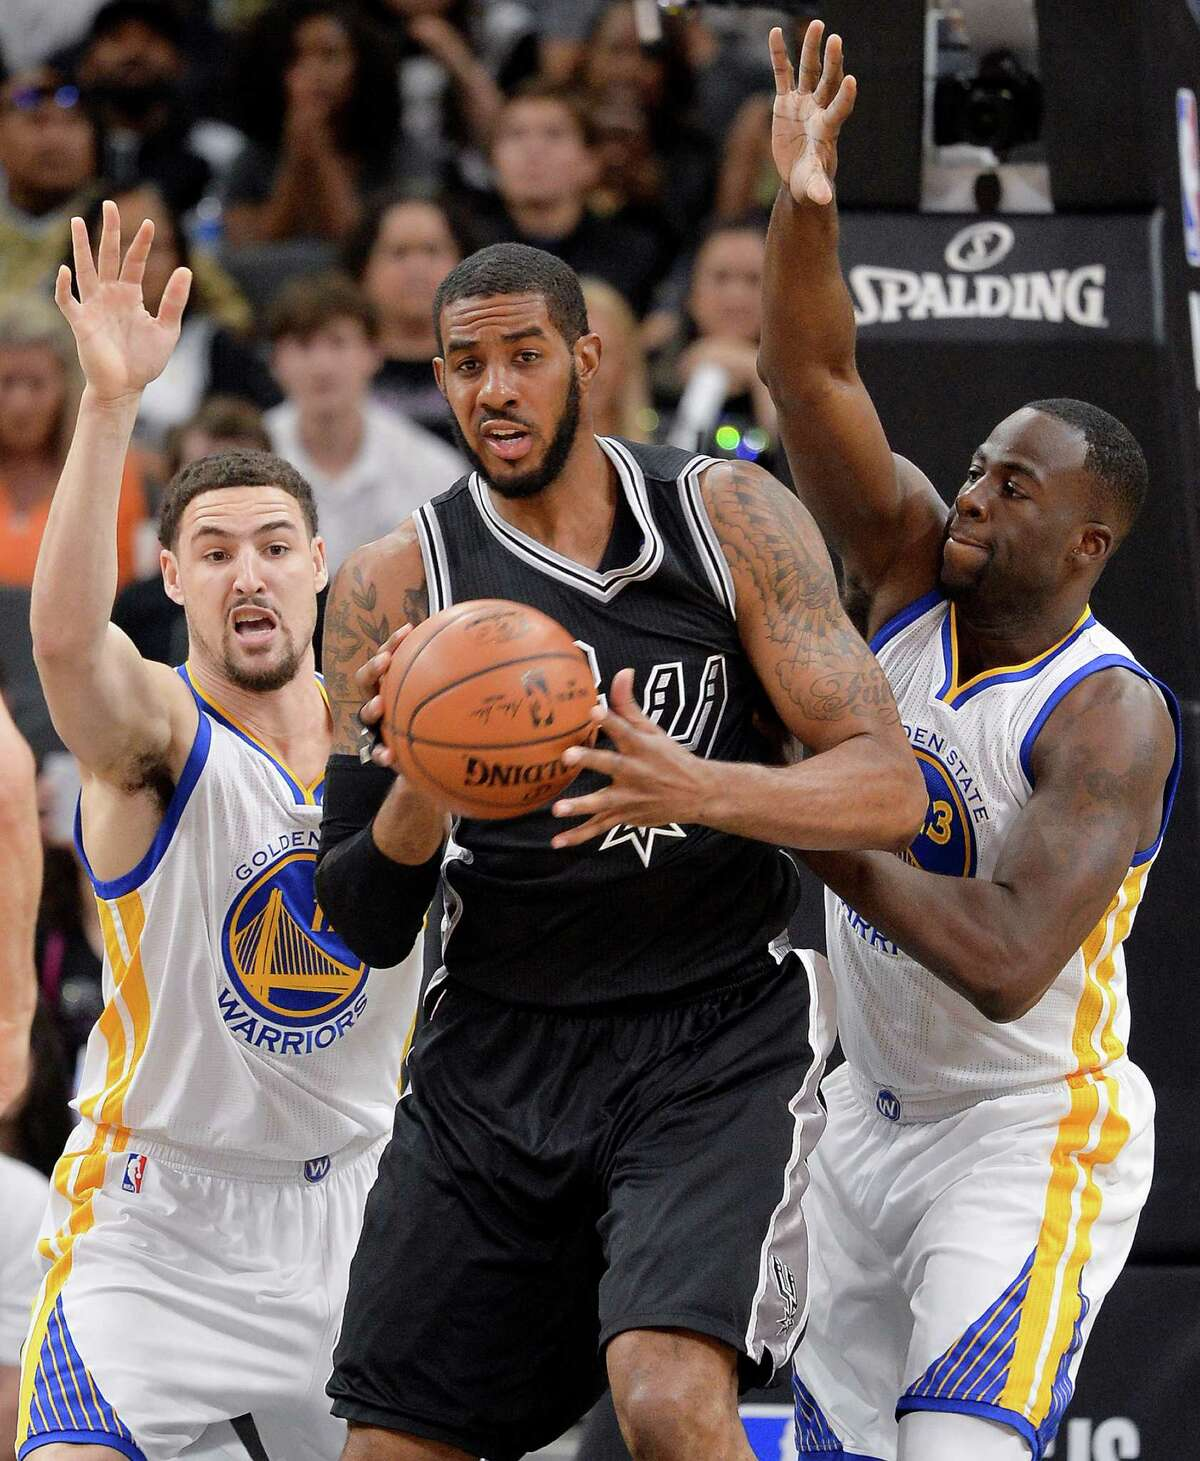 Oct. 25 - Spurs at Warriors, 9:30 p.m. NBA opening night. The Spurs entering a new age. The Warriors poised to ravage the NBA. Kawhi Leonard. Kevin Durant. Stephen Curry. Tony Parker. LaMarcus Aldridge. Draymond Green. Pau Gasol. Klay Thompson. If this doesn't excite you, you're dead inside.